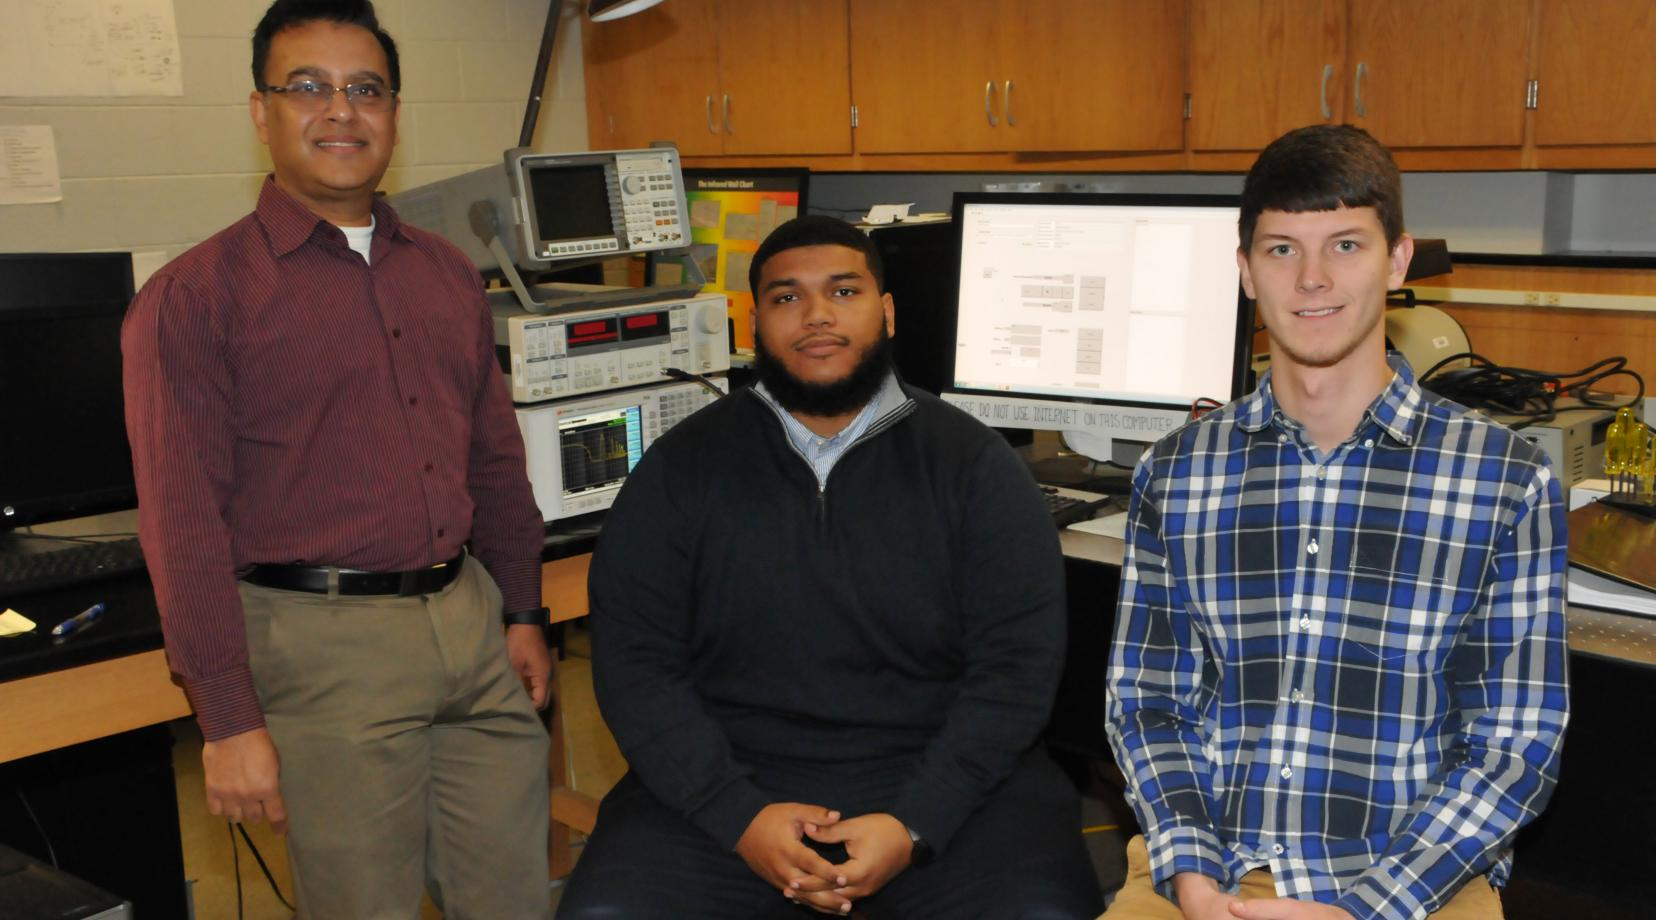 <p>(L-r) Dr. Mukti Rana, chair of the Dept. of Physics and Engineering and the grant's principal investigator, with Danzel Hill and Andrew Voshell, undergraduate and graduate students, respectively. Both students are working with Dr. Rana on the research project.</p>